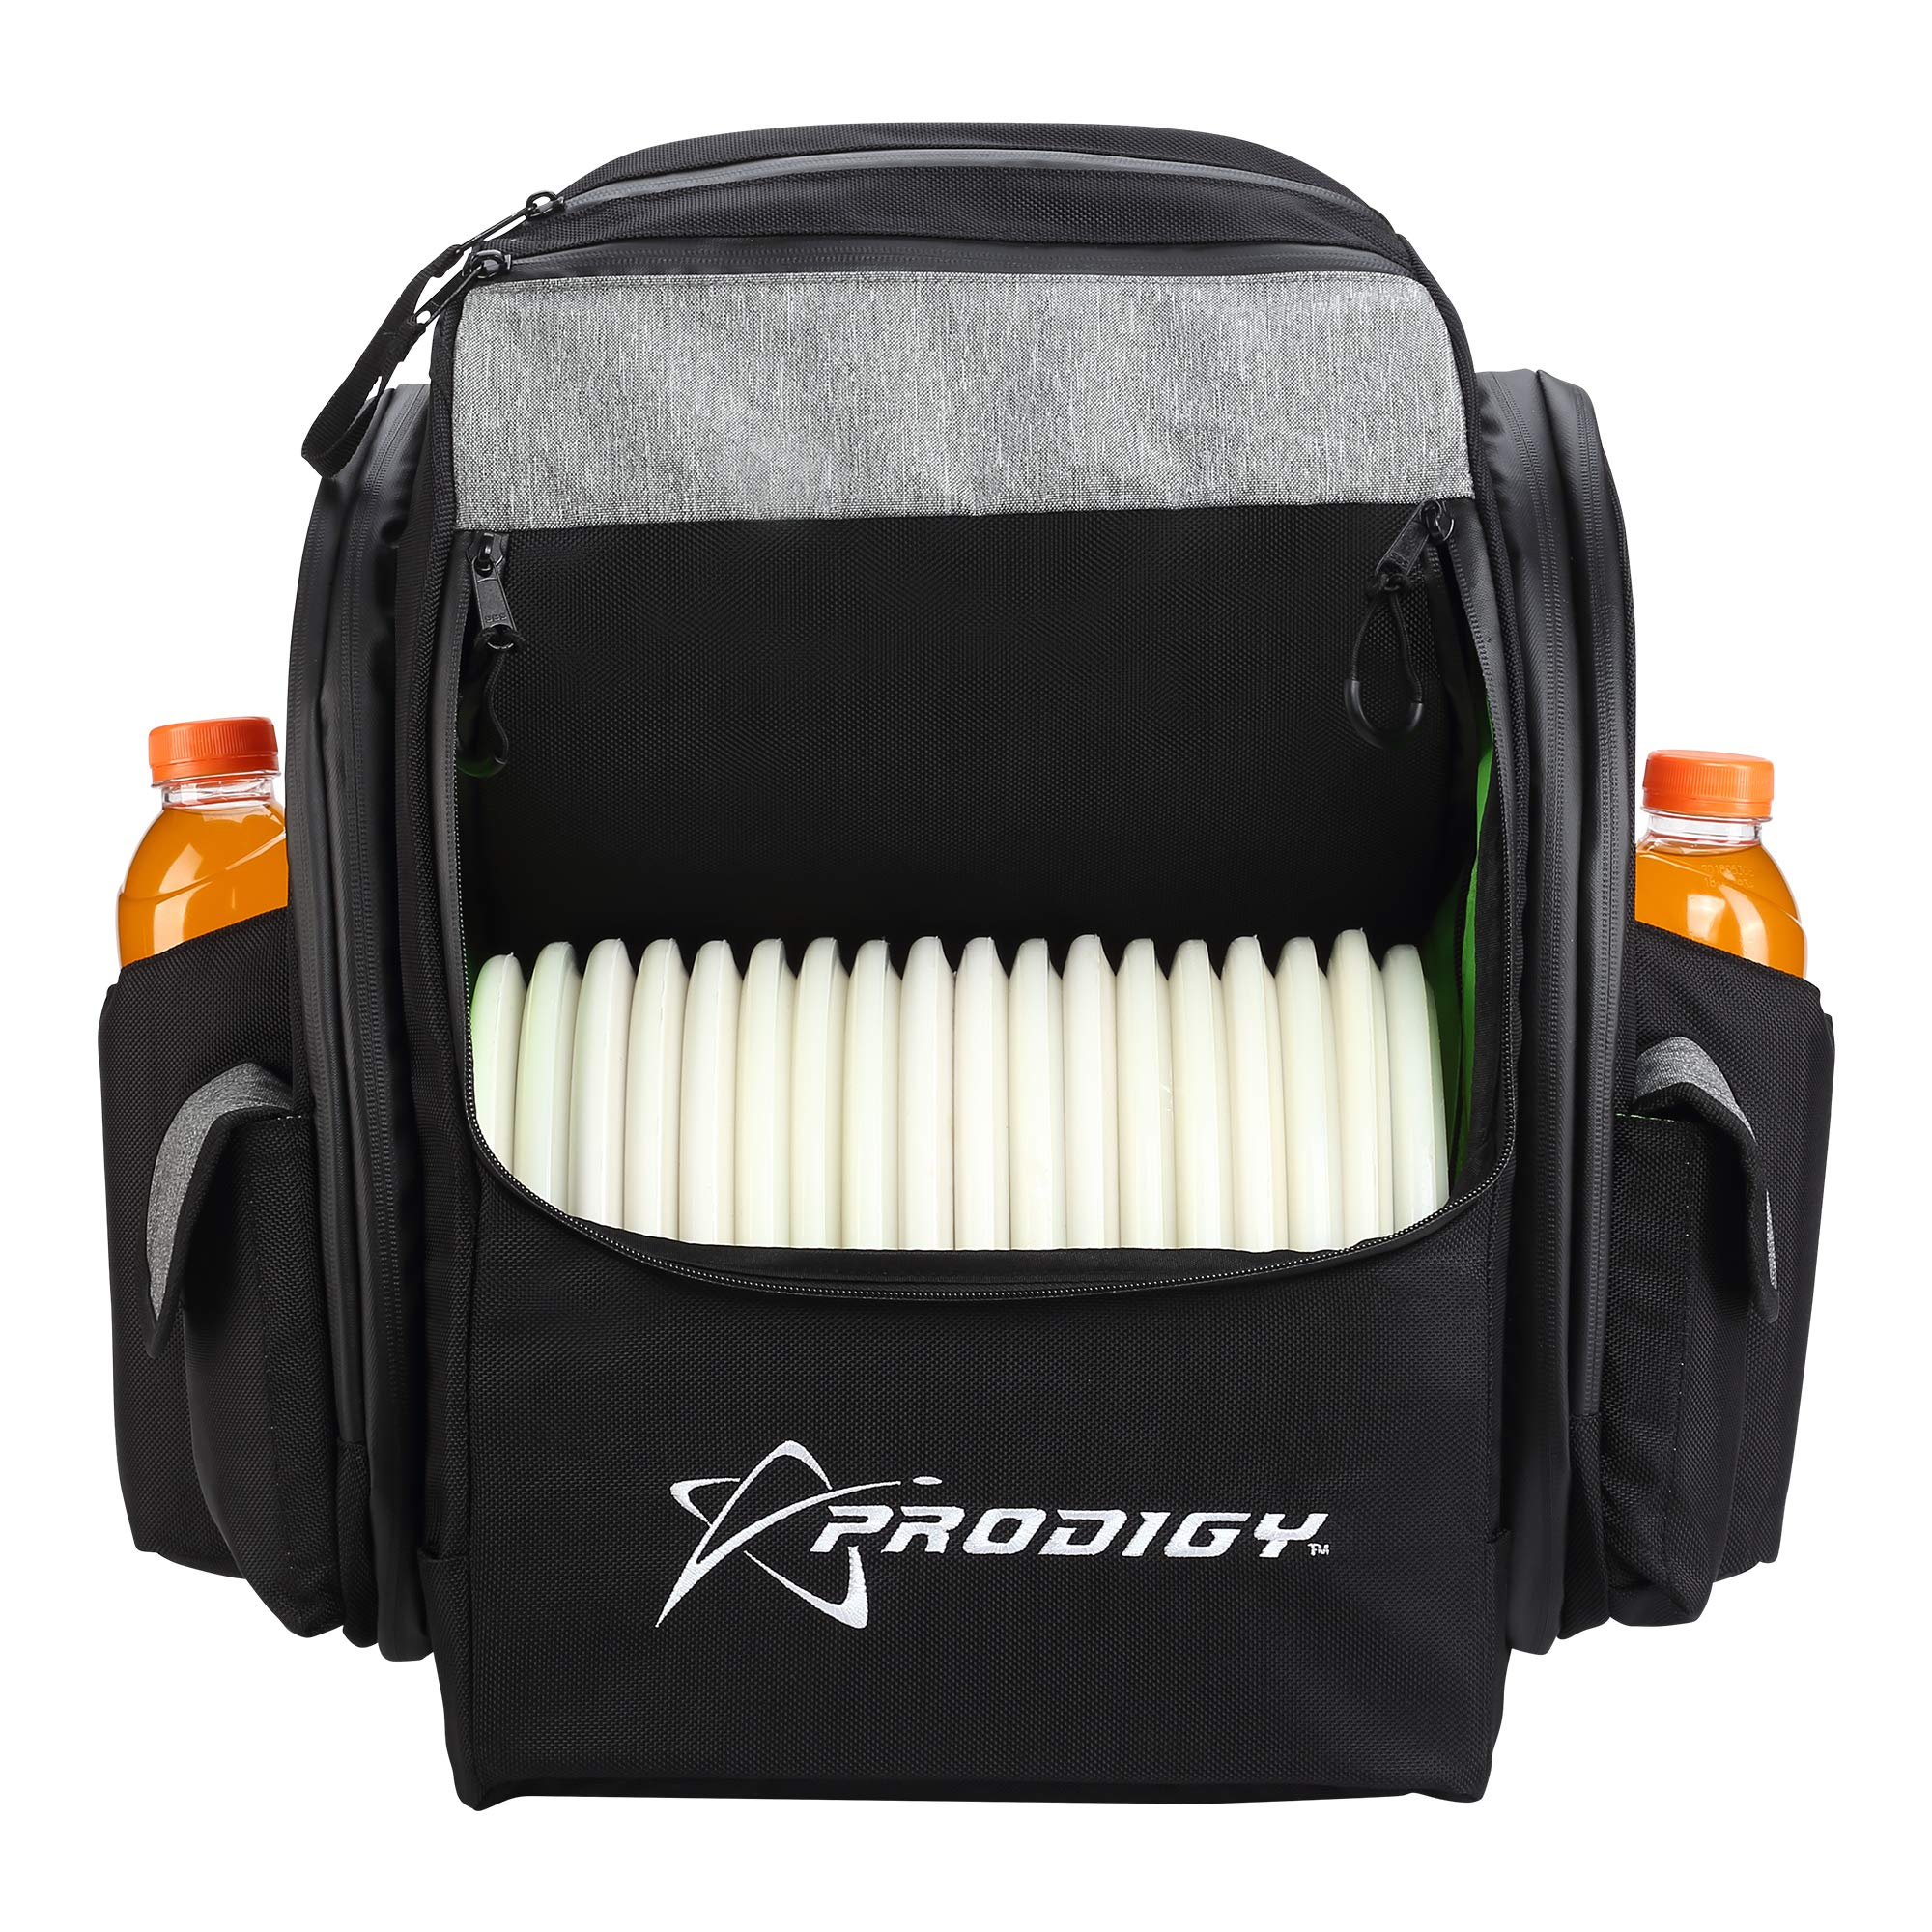 Prodigy Disc BP-1 V2 Disc Golf Backpack Bag - Fits 30+ Discs - Pro Quality (Black/Heather Gray, No Rainfly) by Prodigy Disc